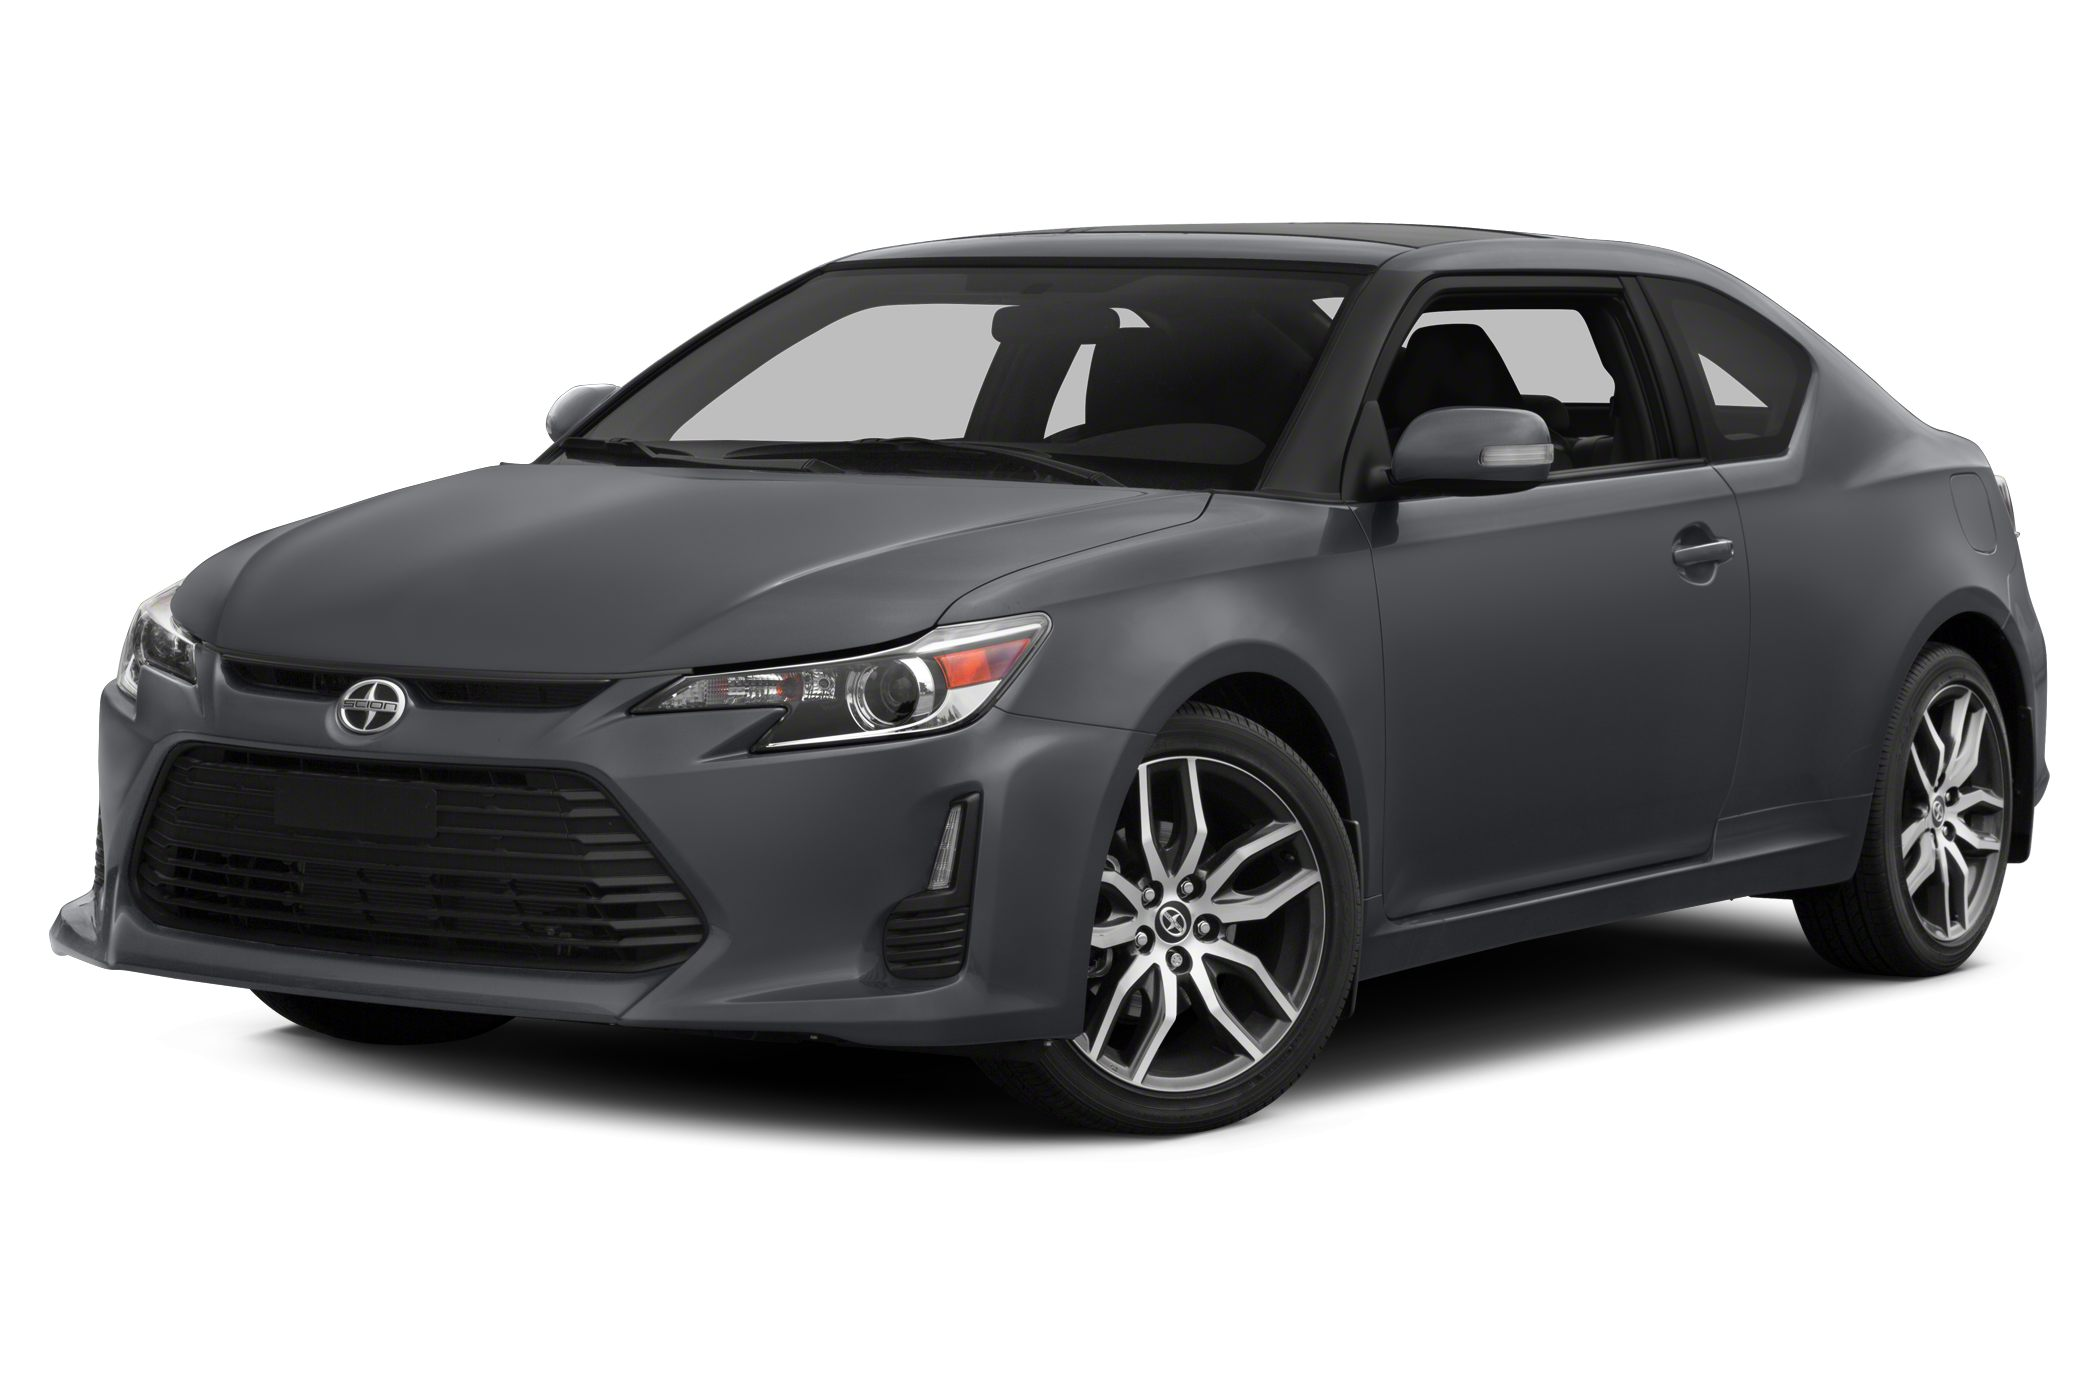 2015 Scion TC Base Coupe for sale in Iowa City for $21,130 with 0 miles